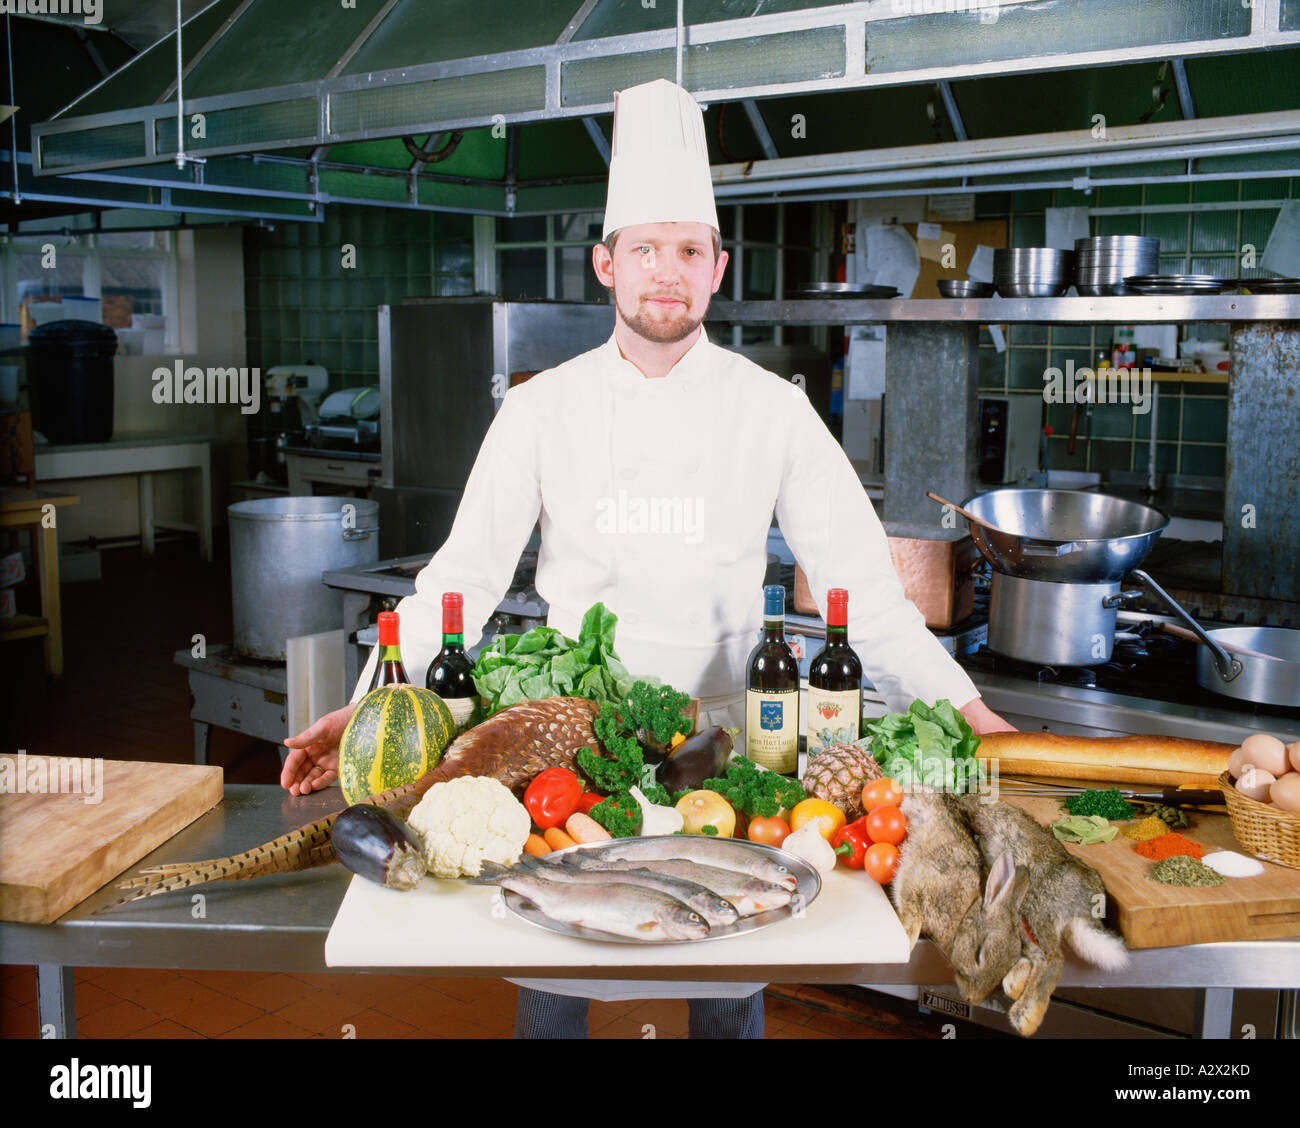 Professional chef in hotel kitchen with display of fresh for Fresh chef kitchen